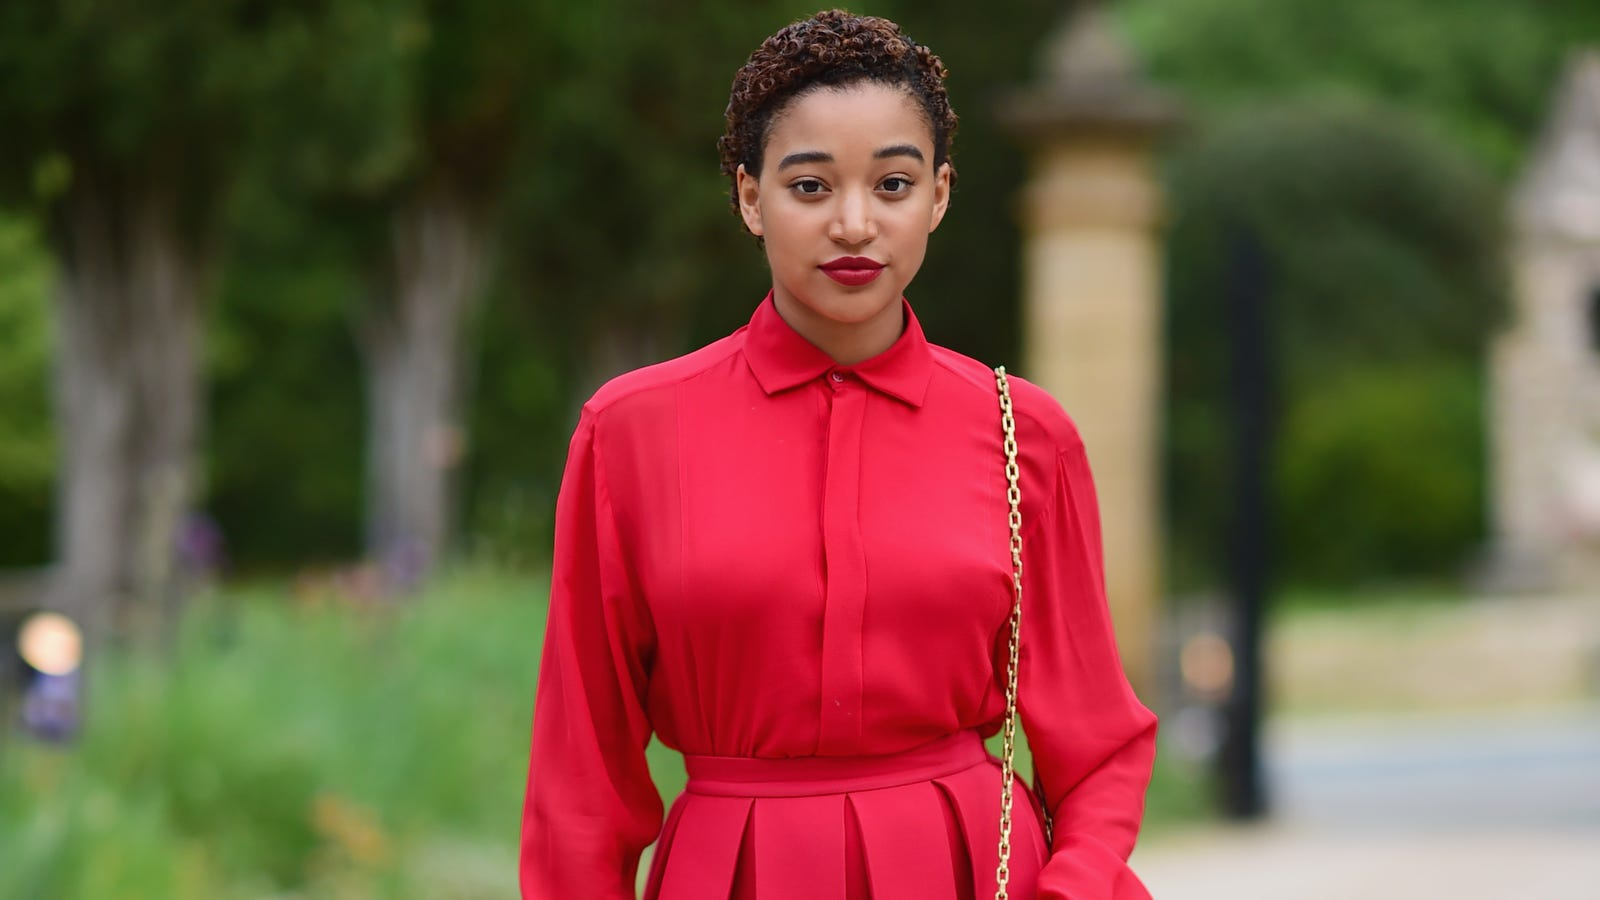 Hunger Games actress Amandla Stenberg comes out as gay - I